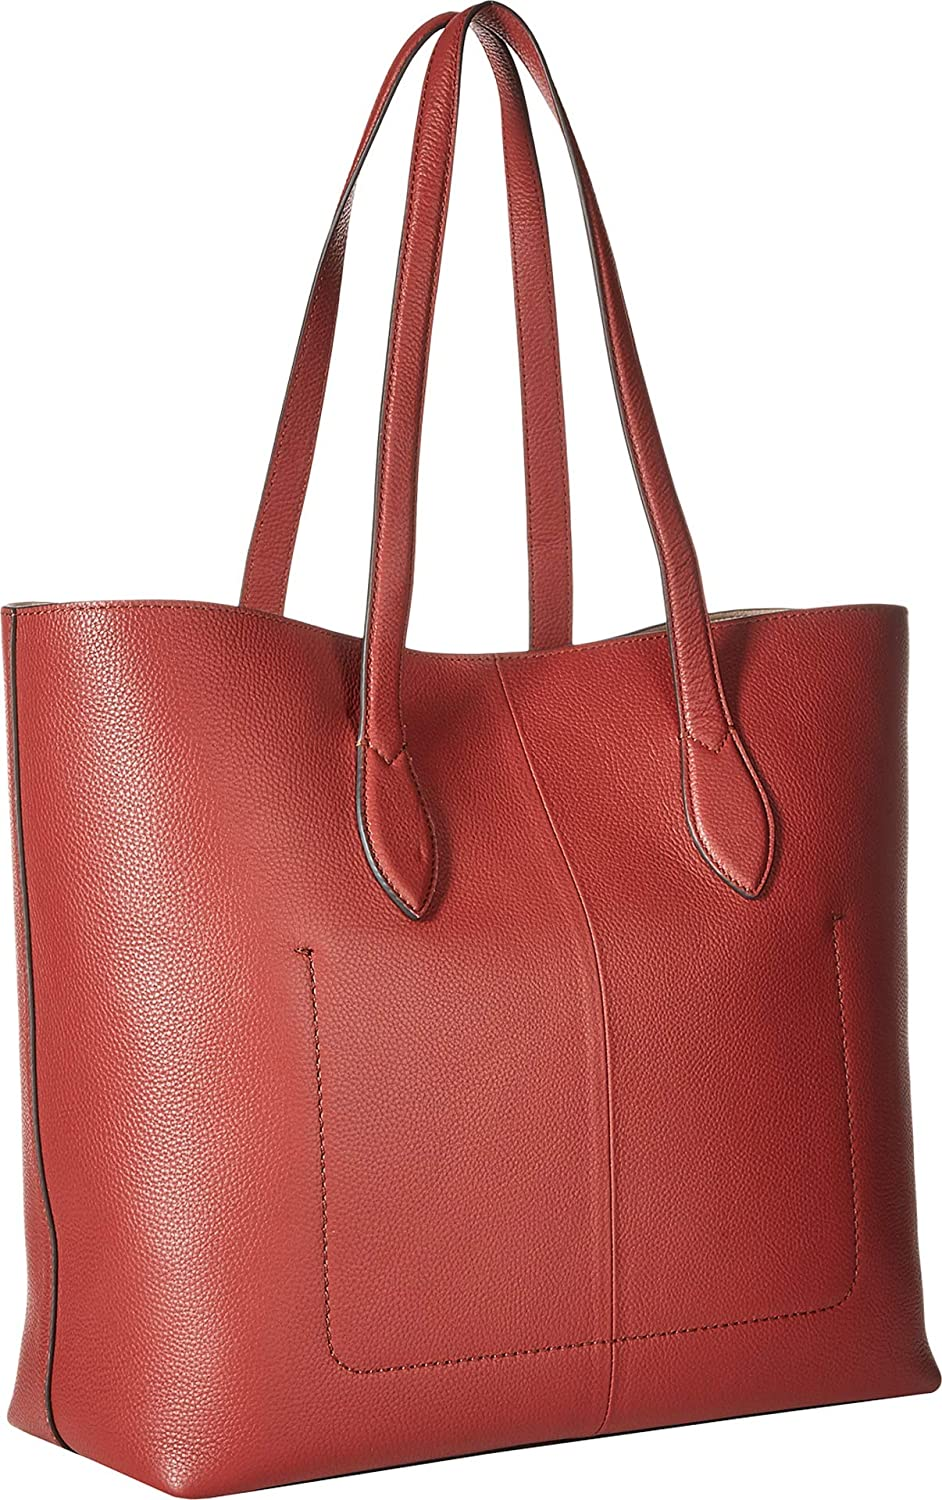 Cole Haan Womens Key Item Tote w//Tassel